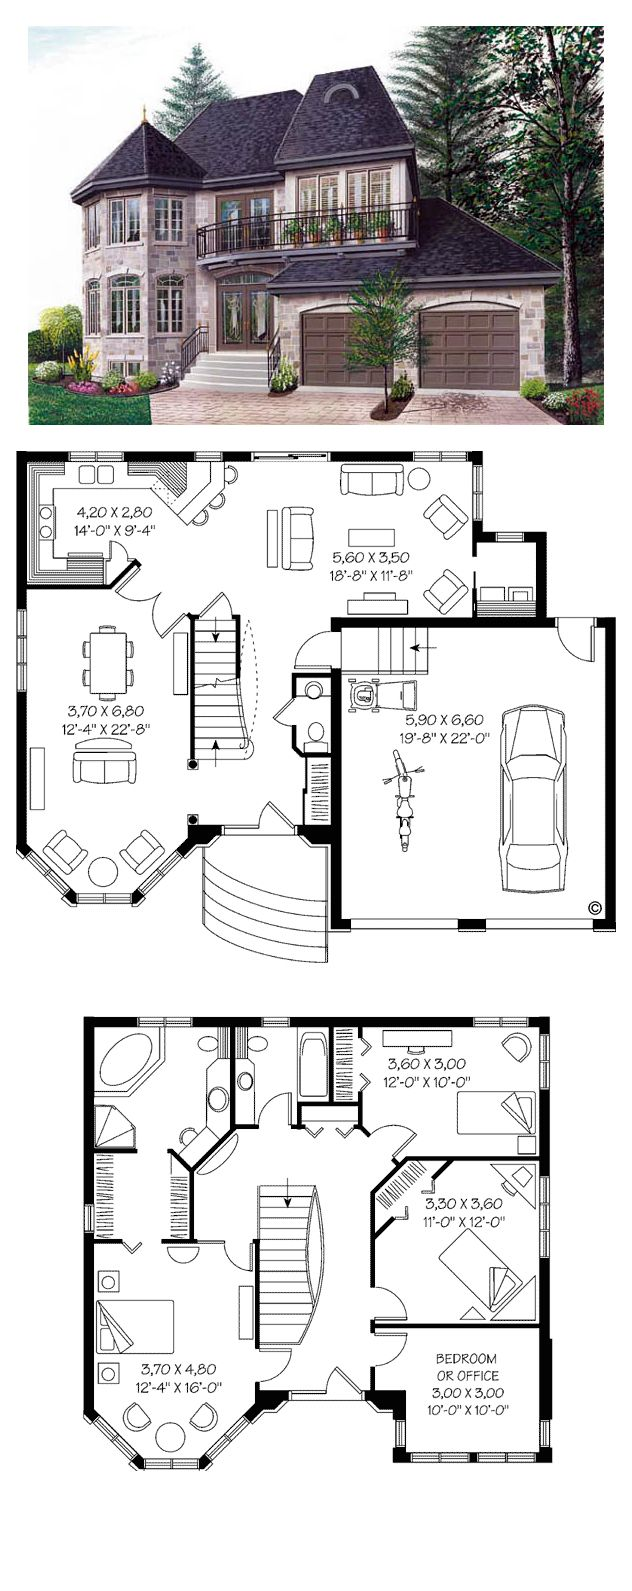 Best 25 sims house ideas on pinterest sims house plans for My family house plans